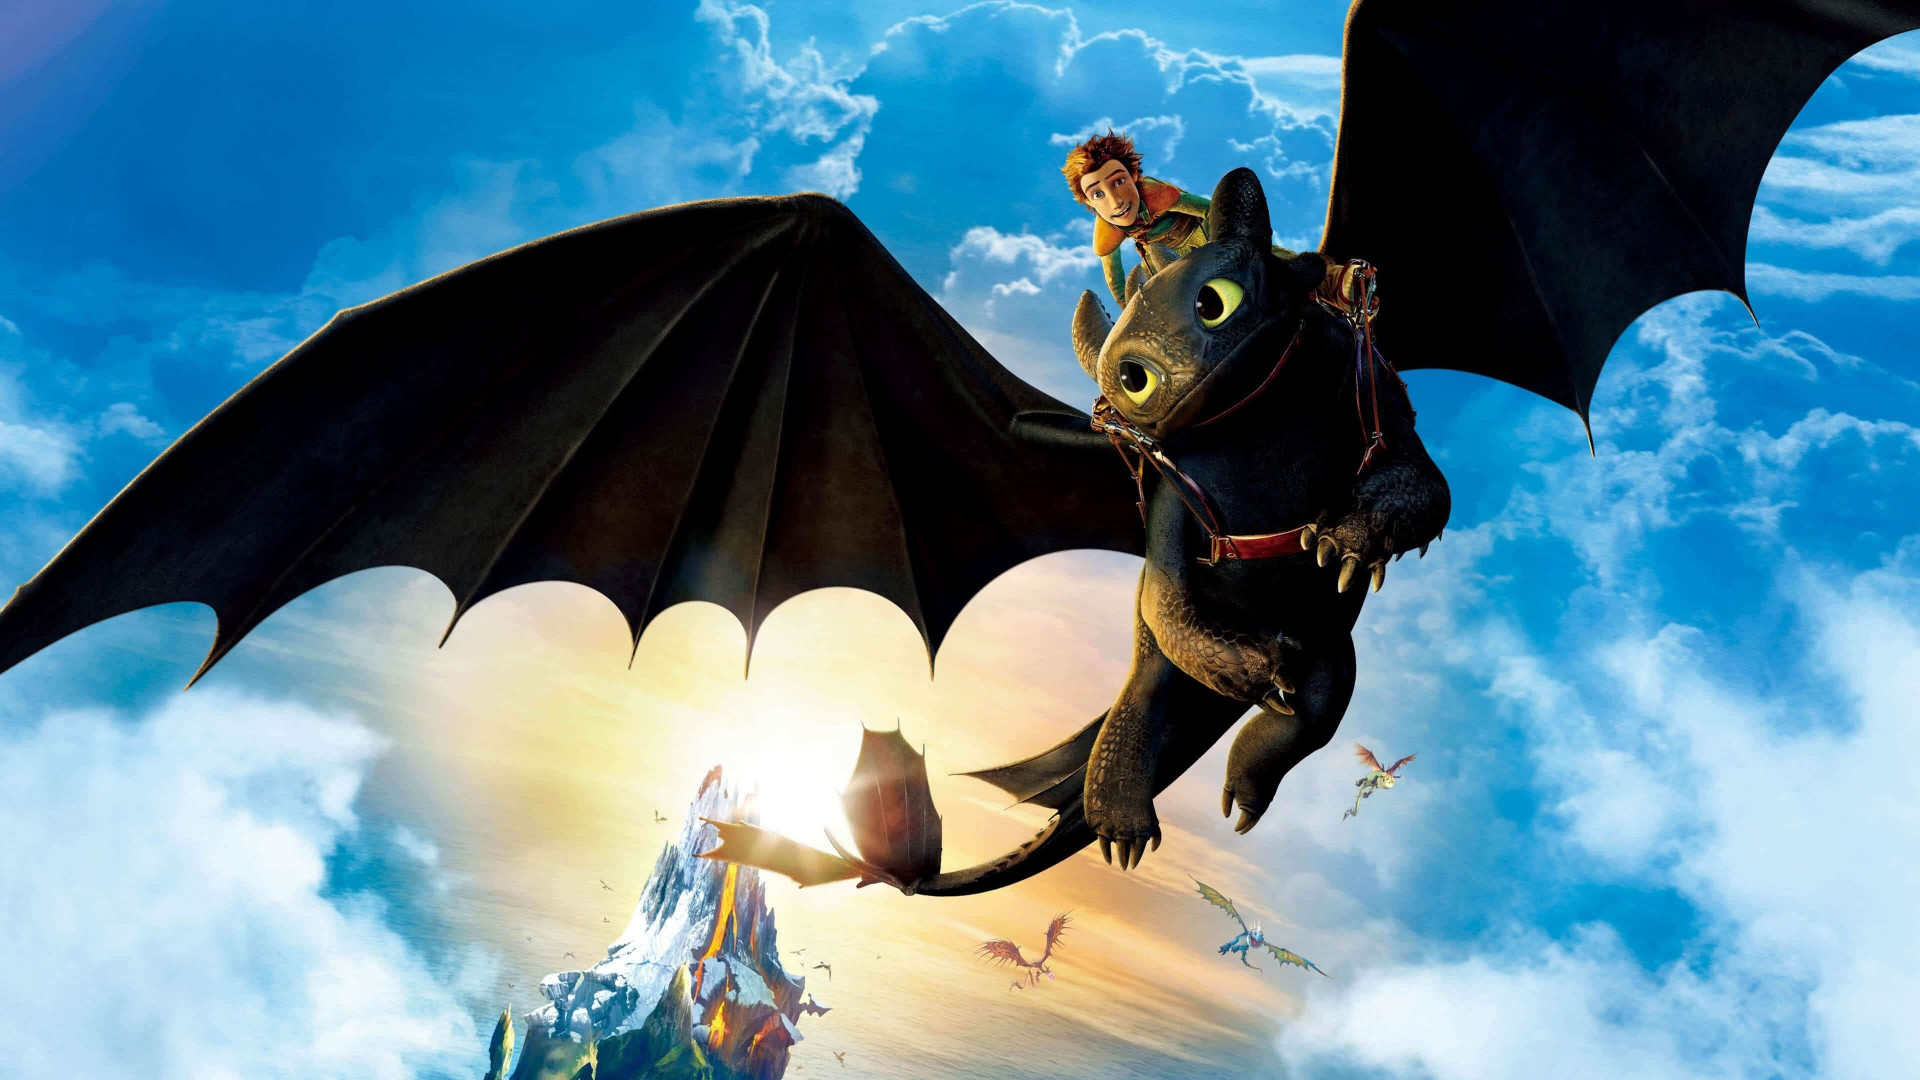 How to Train Your Dragon: The Hidden World wallpaper 1920x1080